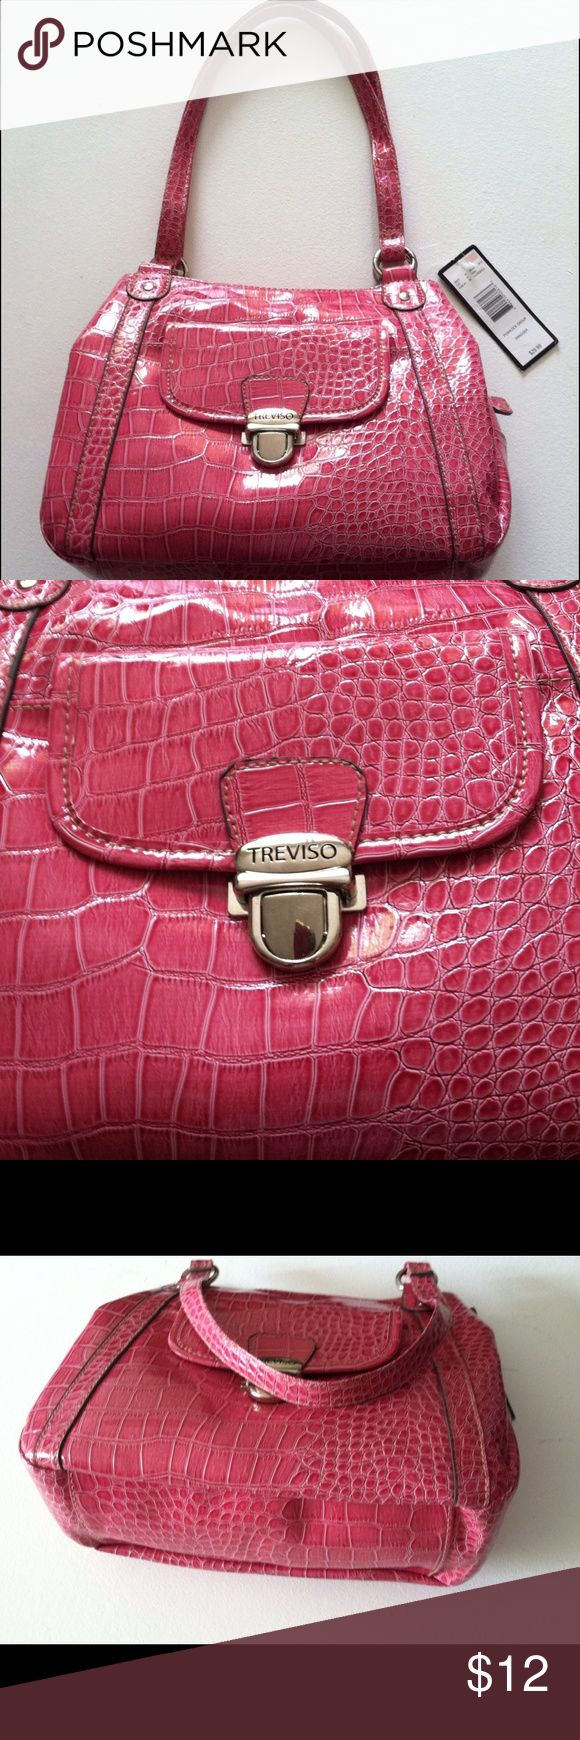 $ Final $ Pink SHOULDER PURSE BRAND NEW Super cute brand new pink purse - many compartments. Shop early for CHRISTMAS ! treviso Bags Shoulder Bags